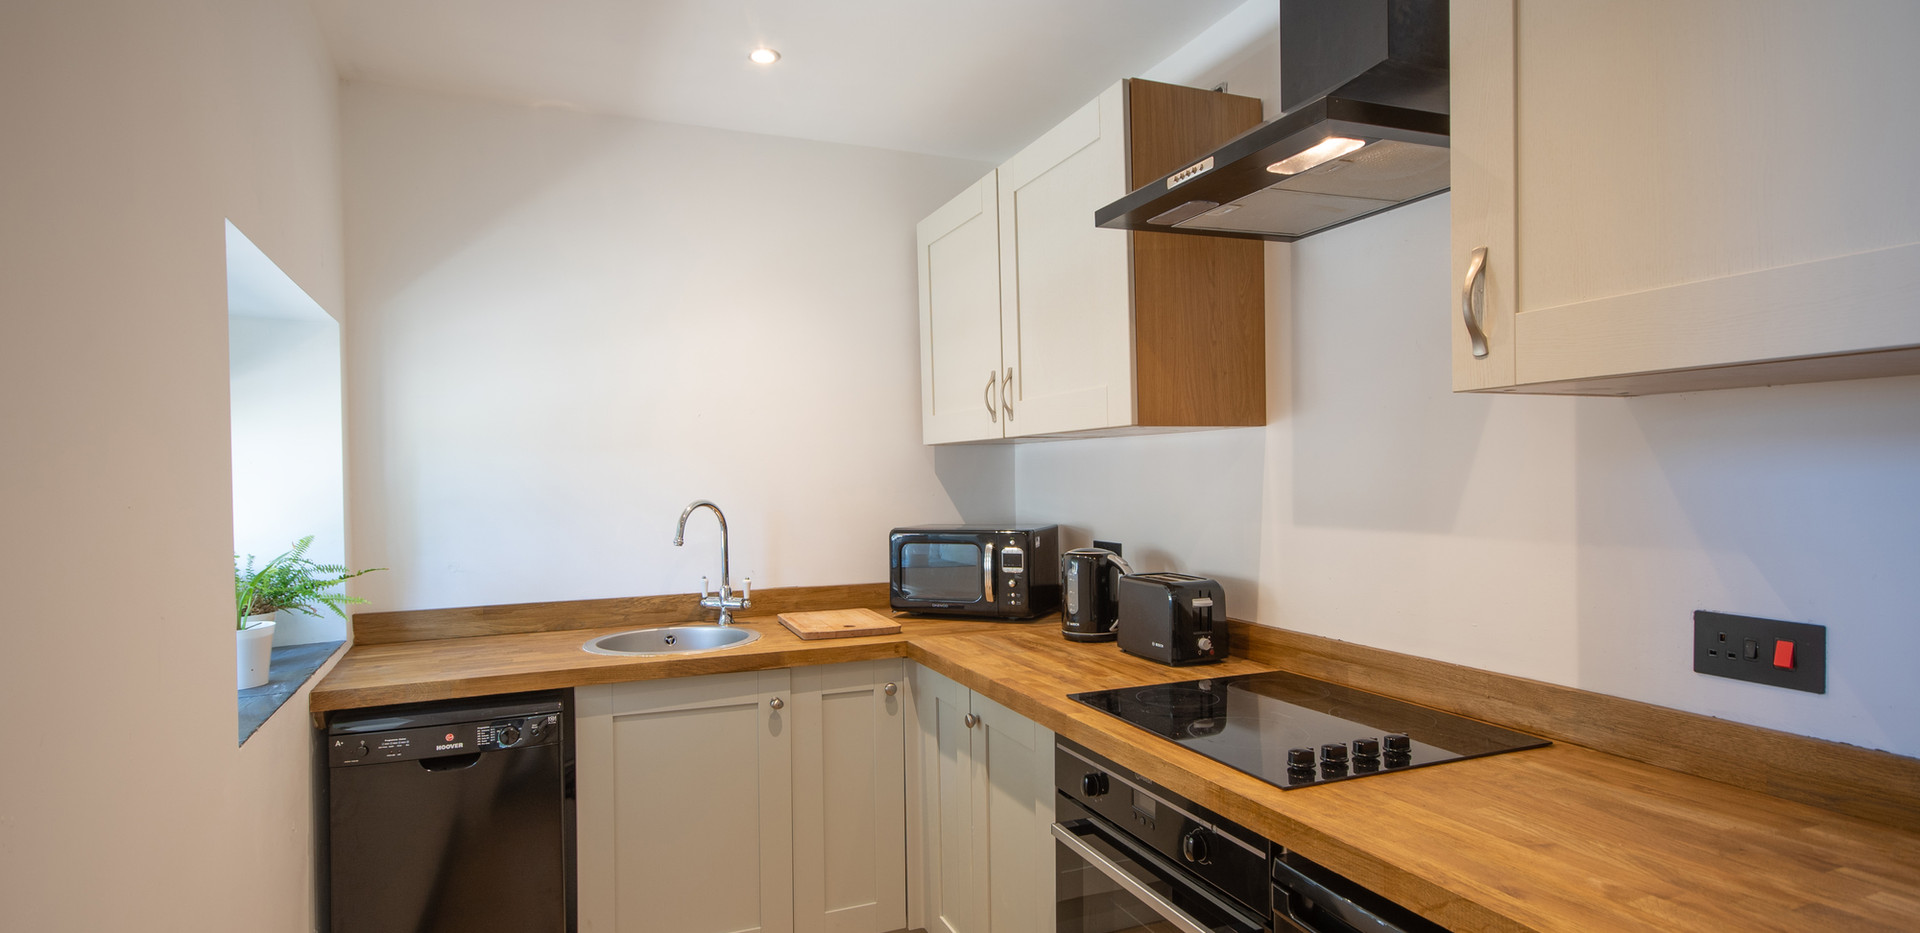 henmore Kitchen.jpg